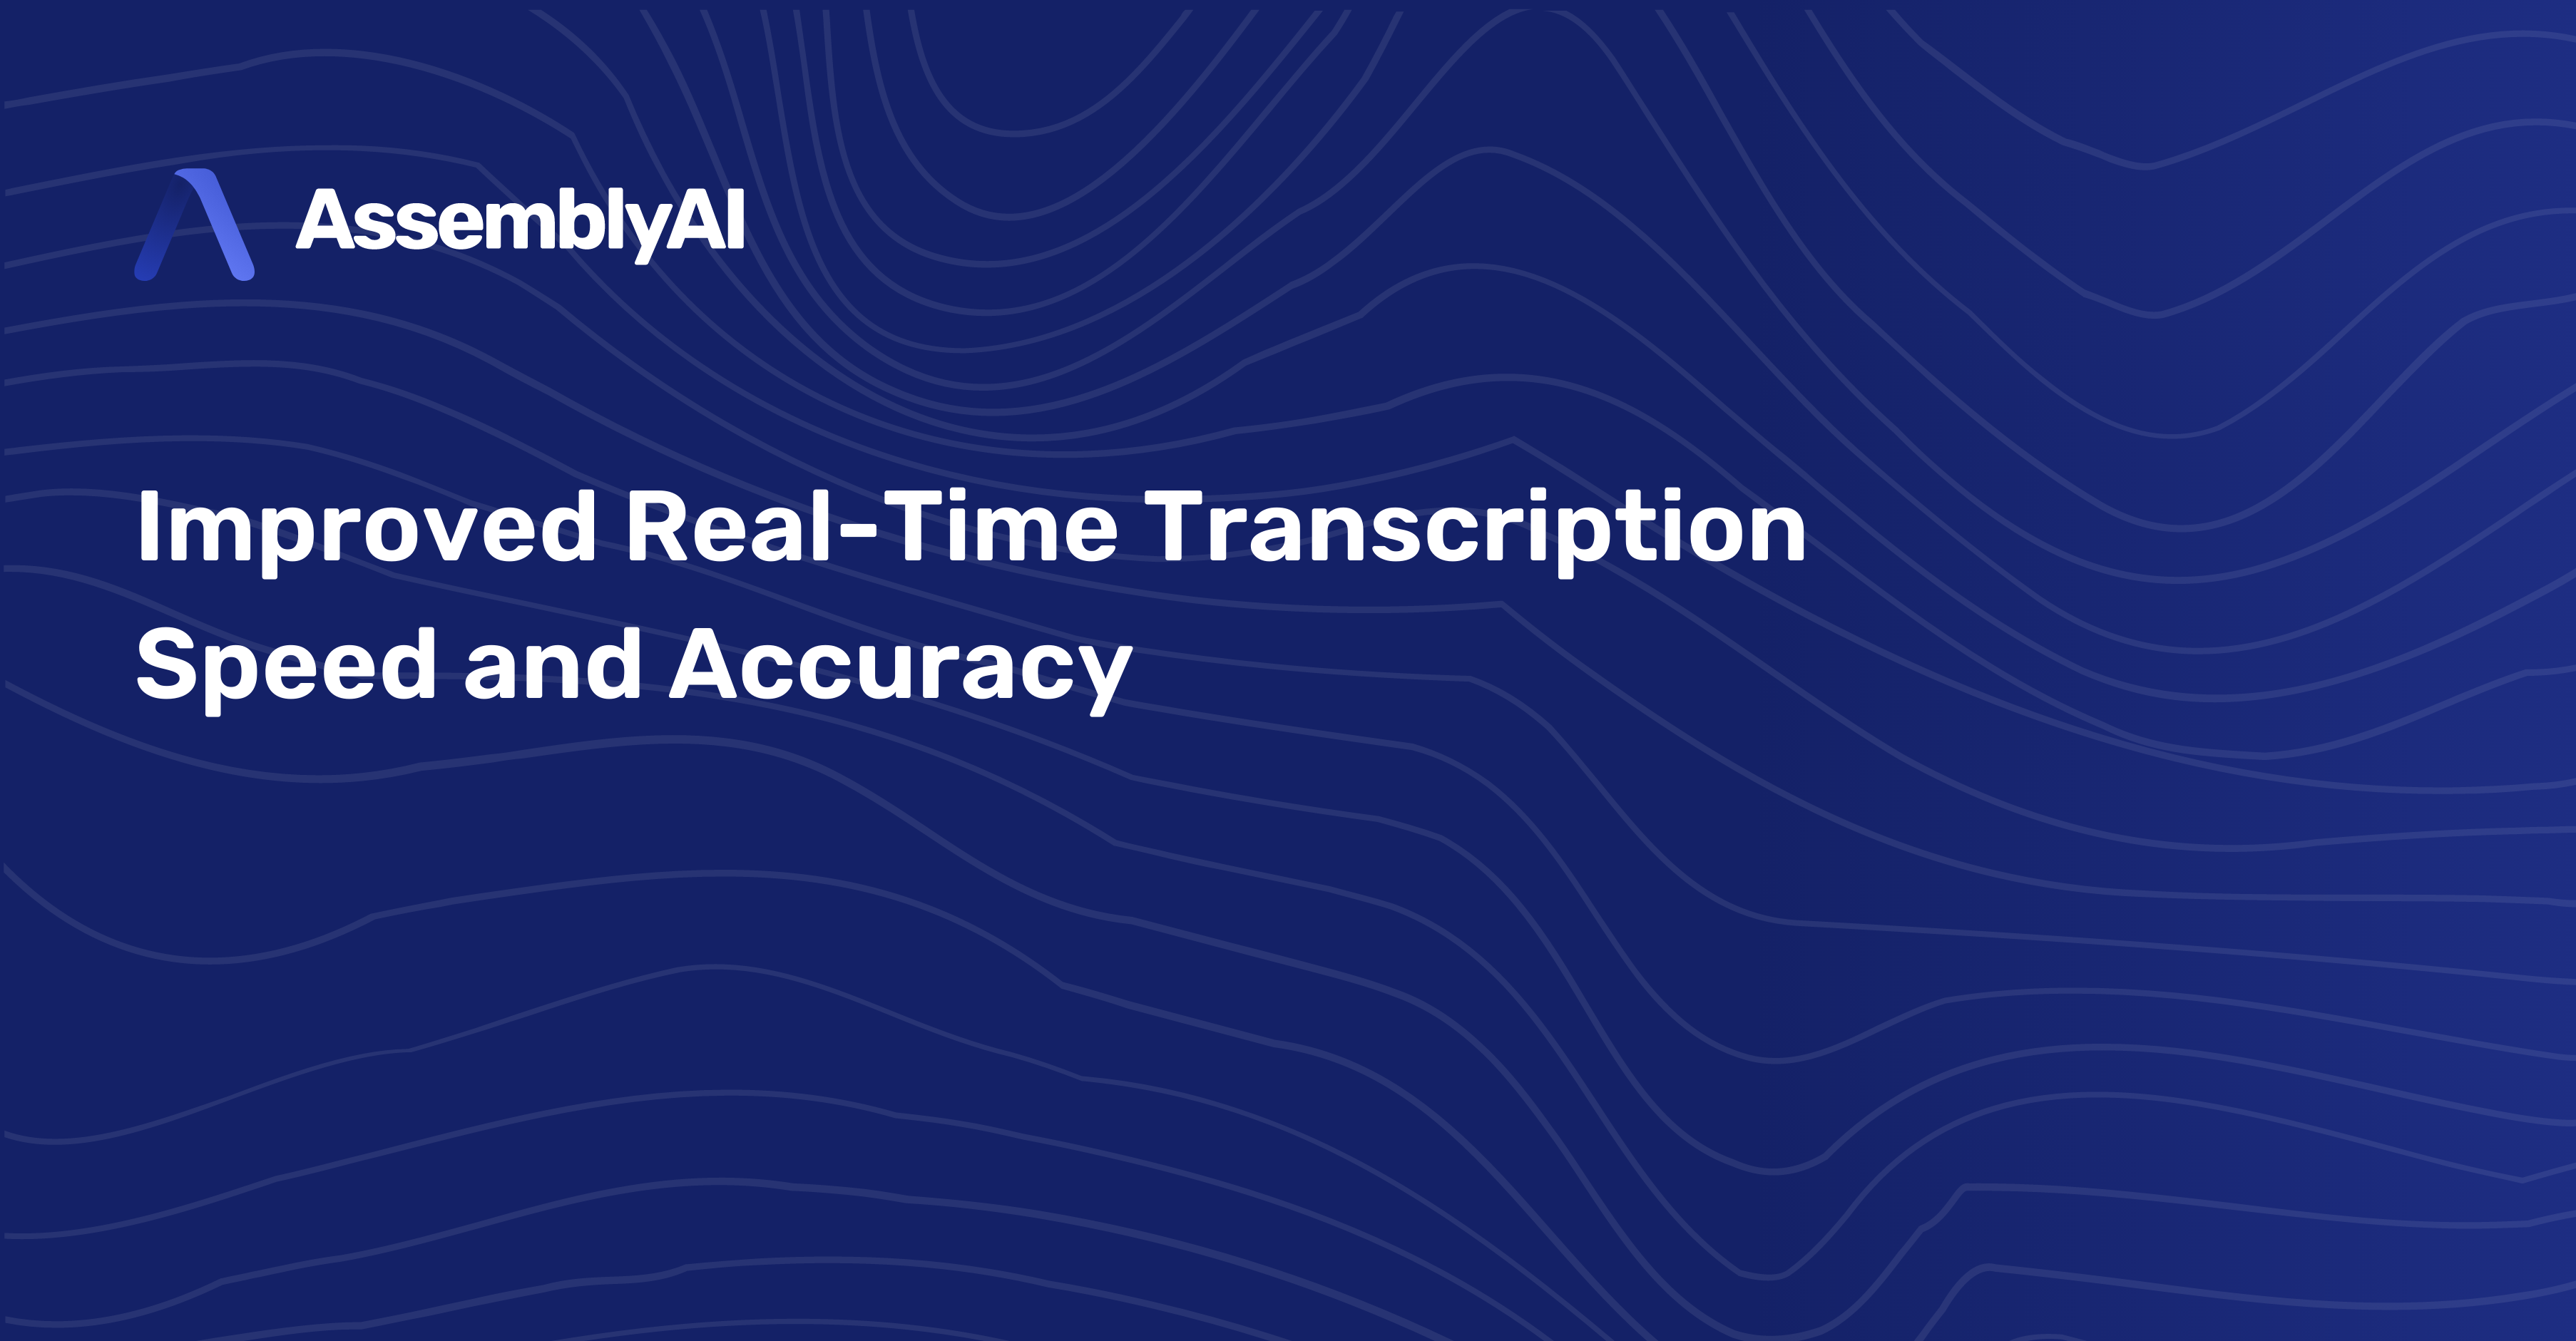 Improved Real-Time Transcription Speed and Accuracy